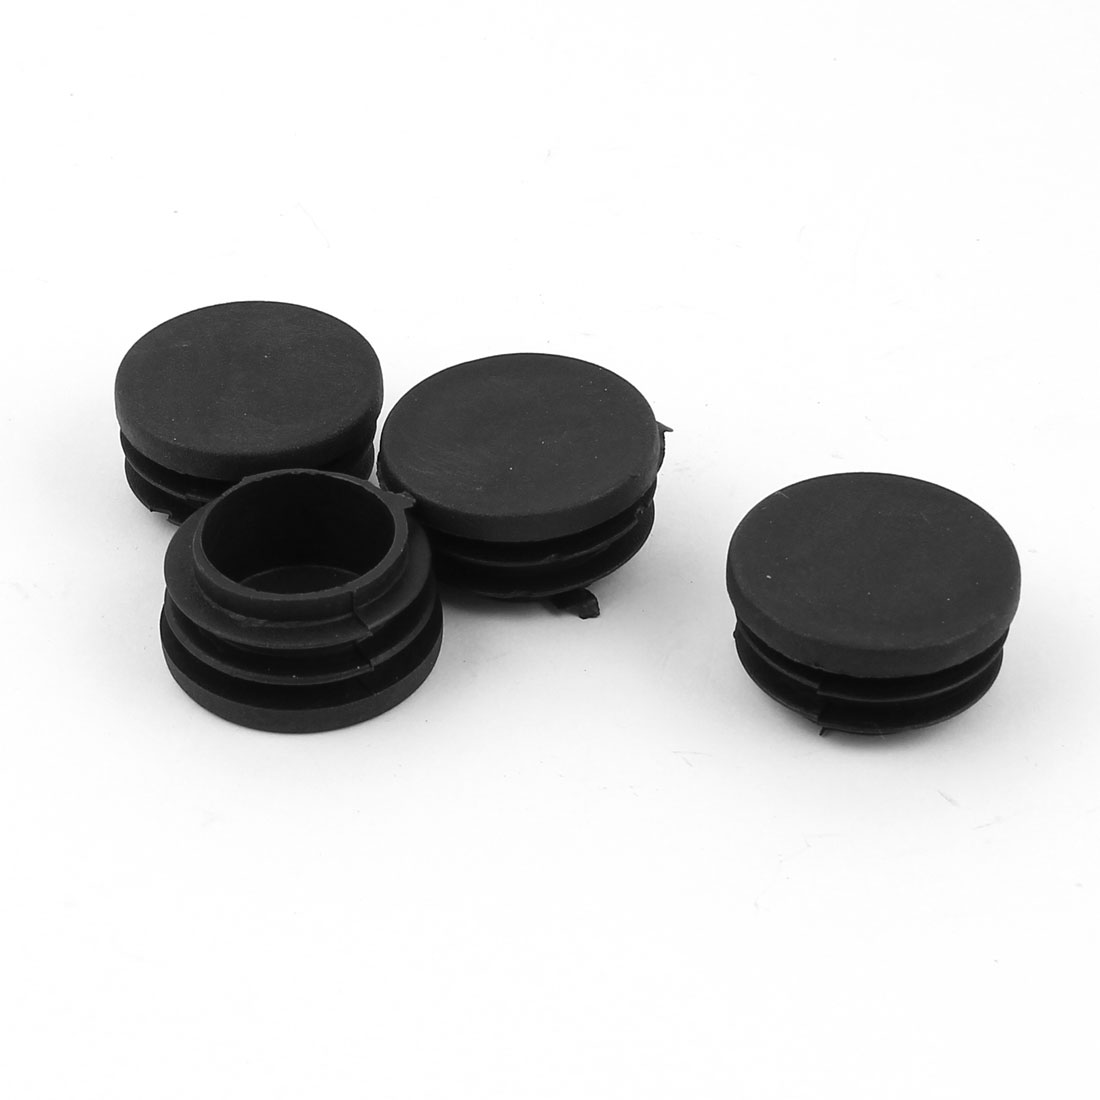 X Autohaux Chair Table 32mm Dia Round Shape Plastic Blanking End Cap Rockford Fosgate Component Speakers Tubing Tube Insert 4 Pcs In Floor Mats From Automobiles Motorcycles On